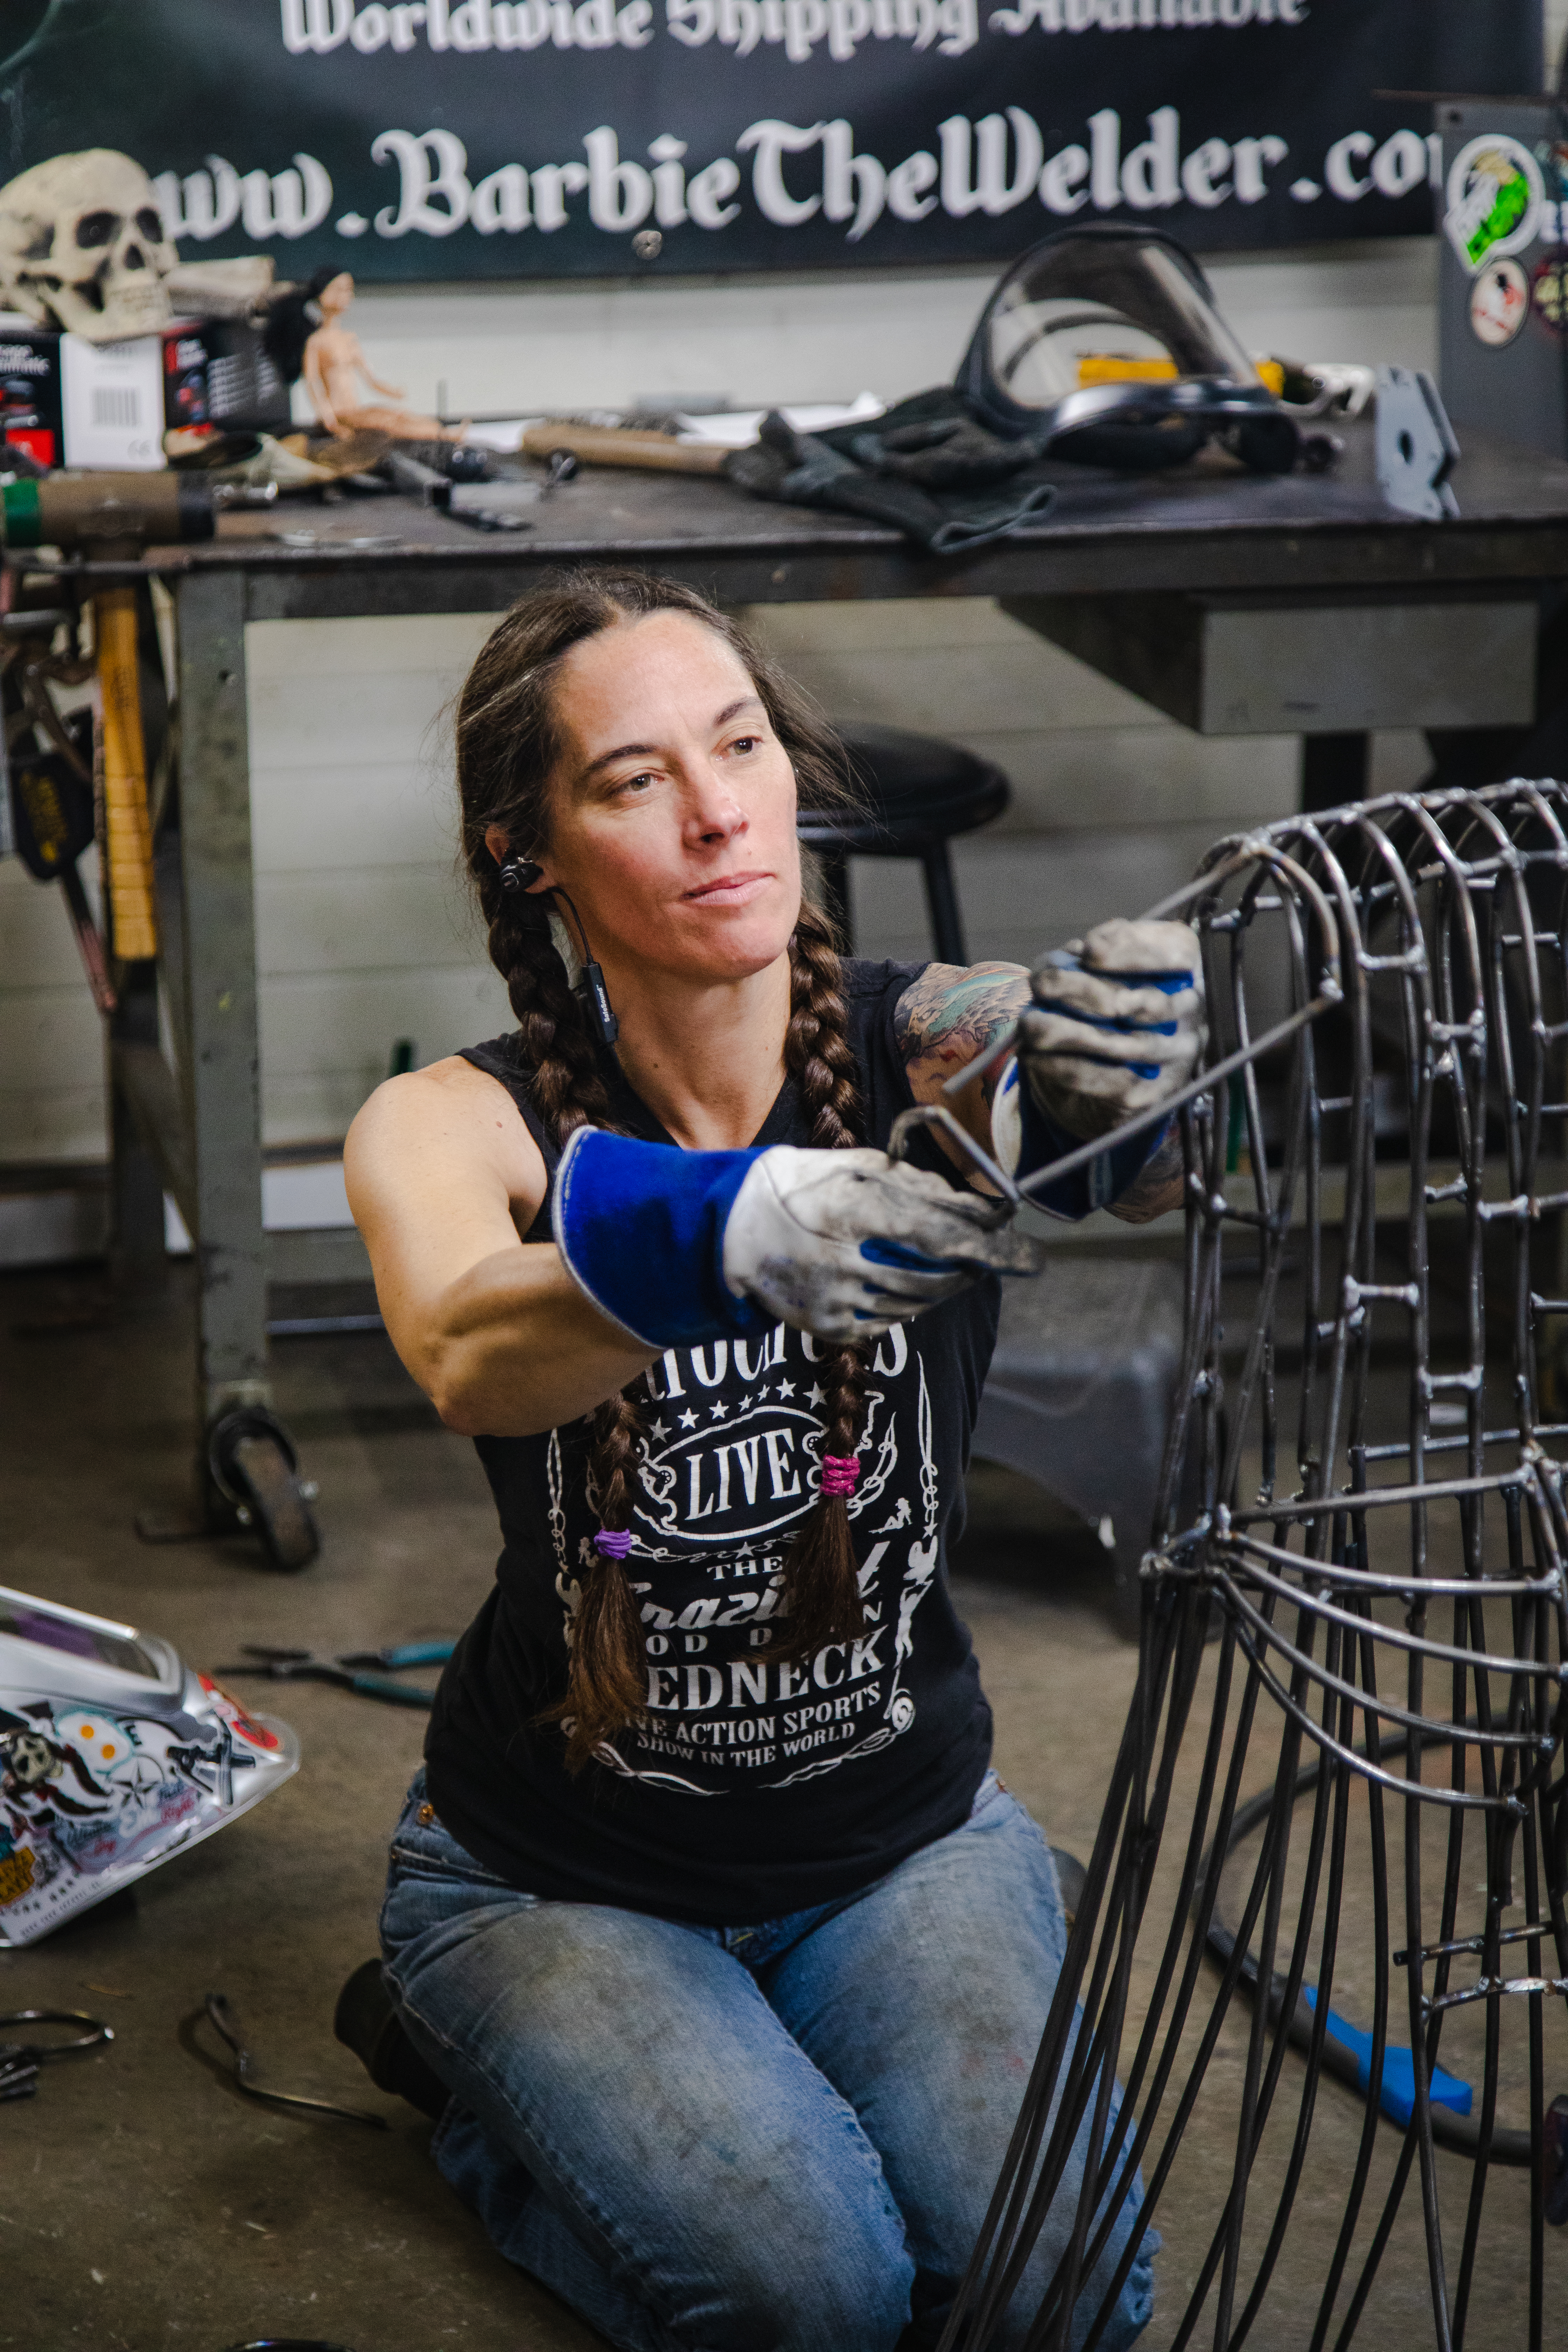 Barbie The Welder working on The American Welding Society commission Statue Of Liberty